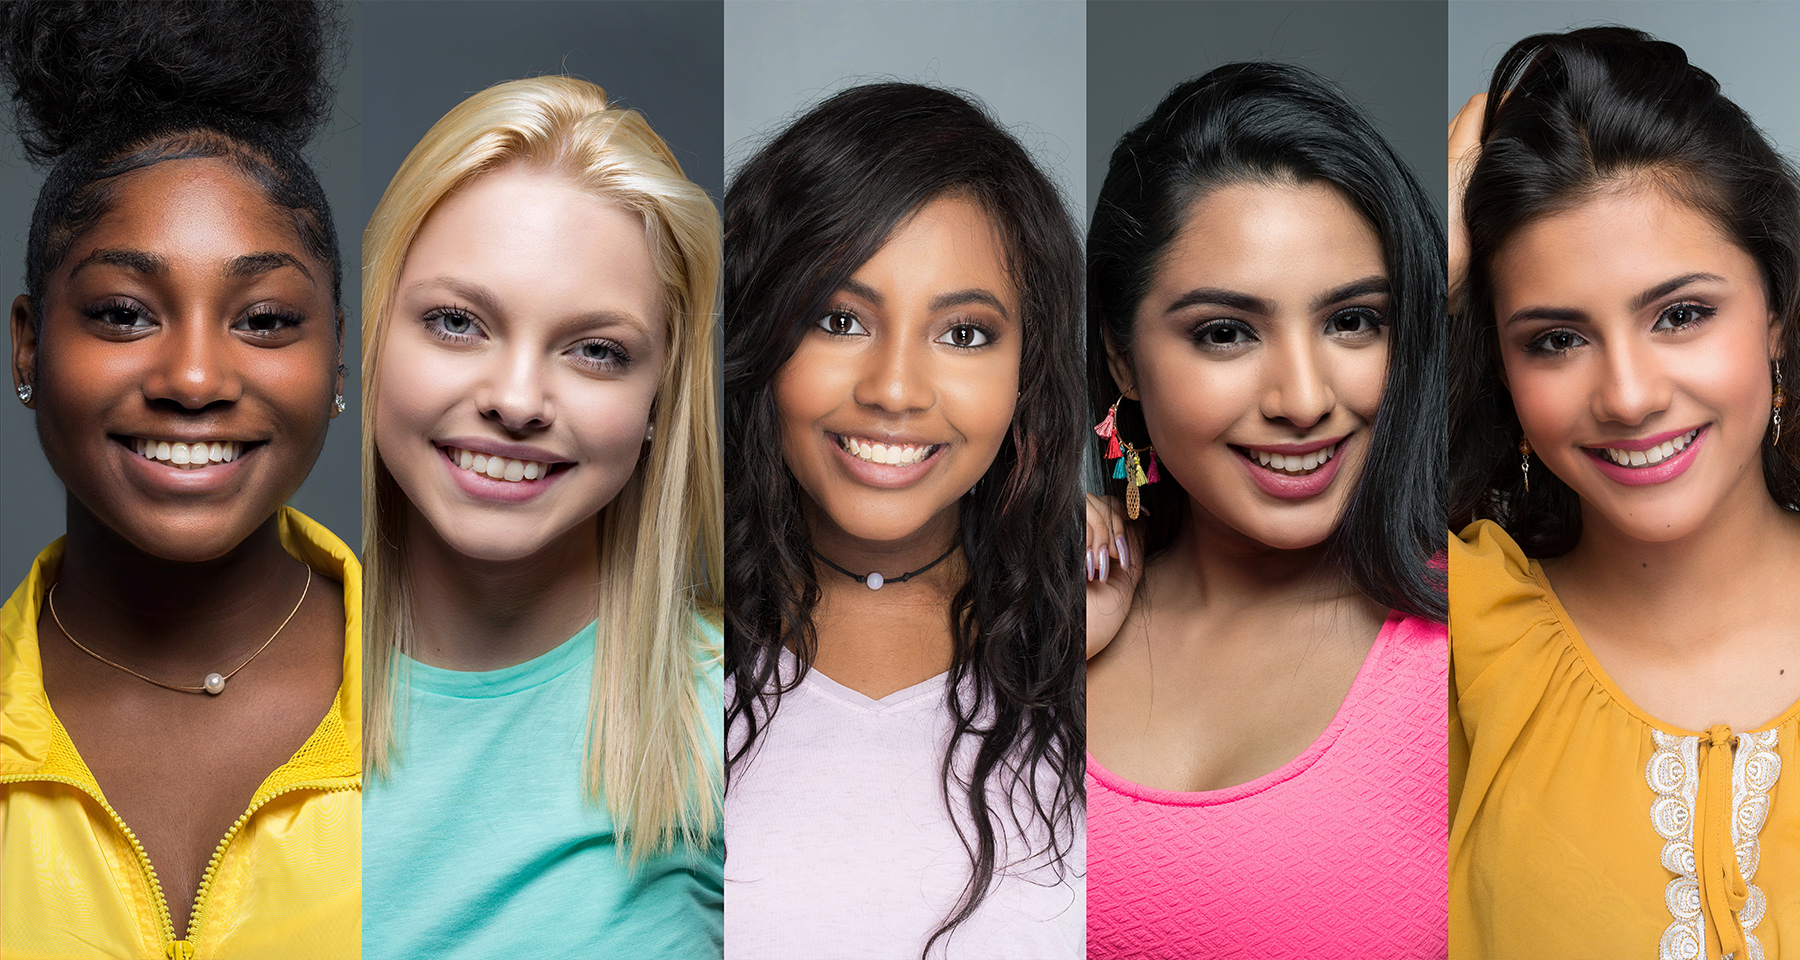 Ekstra Bladet connects female Millennials, advertisers with Shero niche media brand